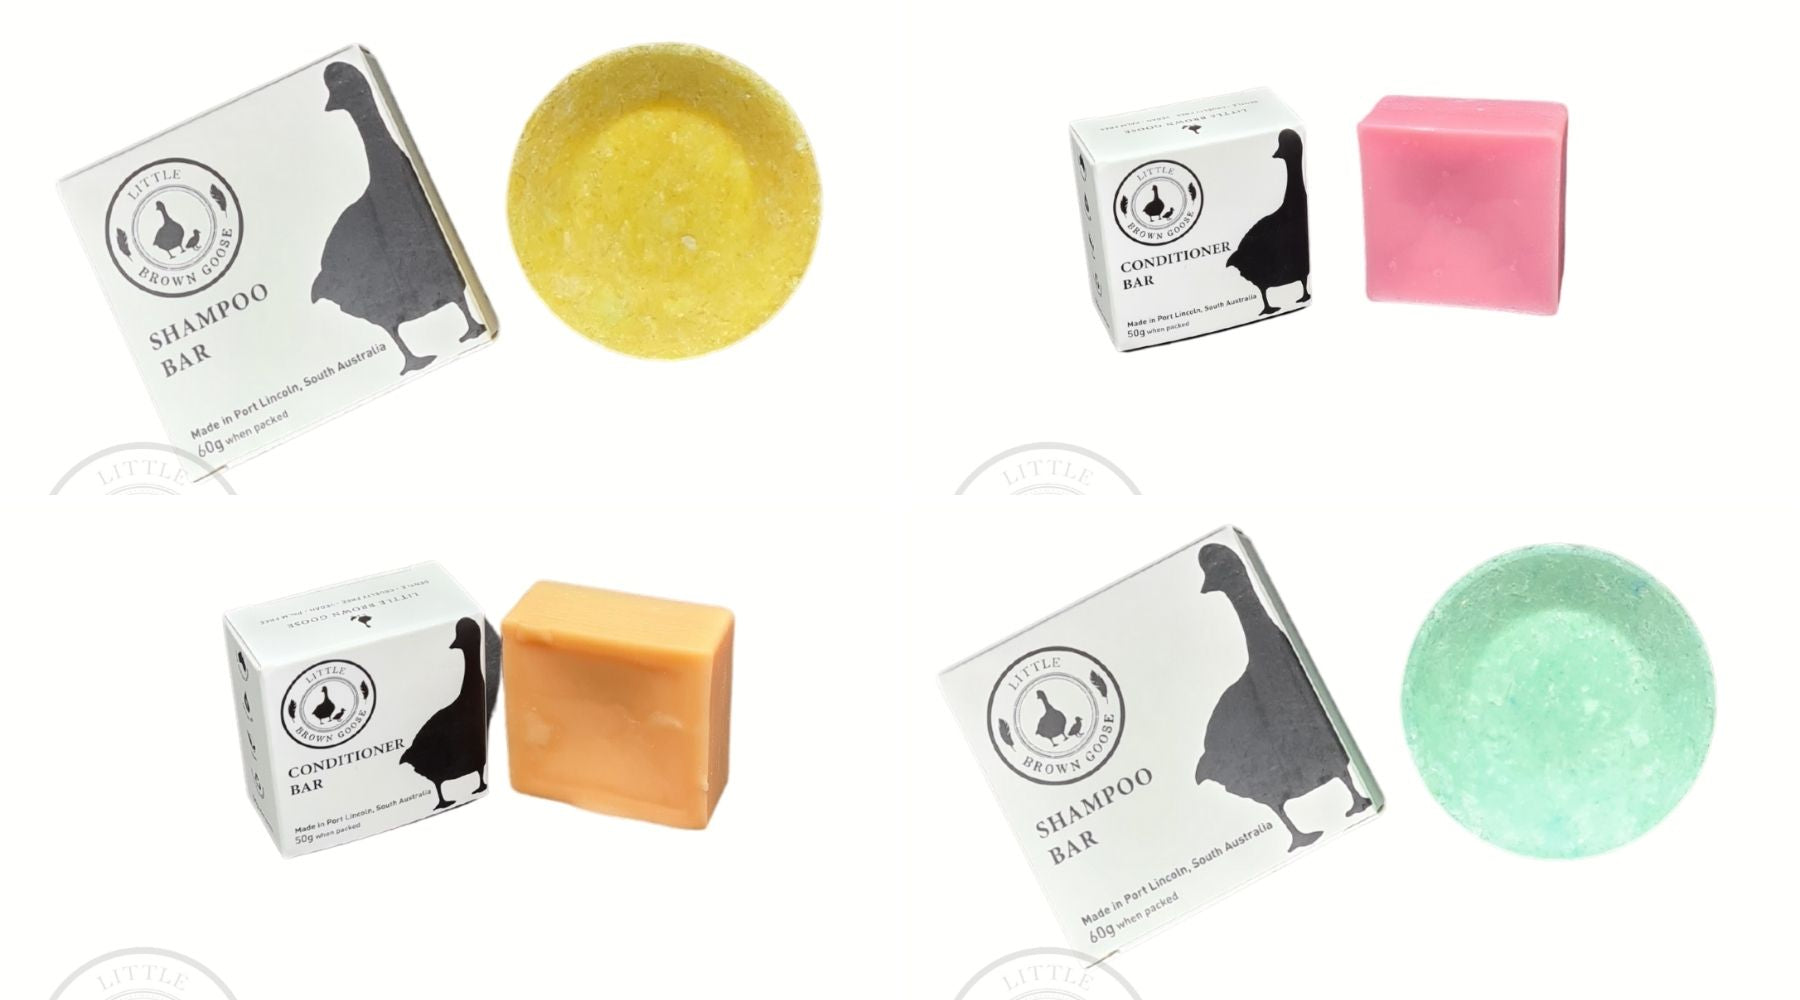 Shampoo bars, made naturally to love and nourish your hair by little brown goose. Enjoy the luxury of our beautiful shampoo bars, loaded with natural oils to nourish and revitalise your hair. Shampoo and Conditioner Bars